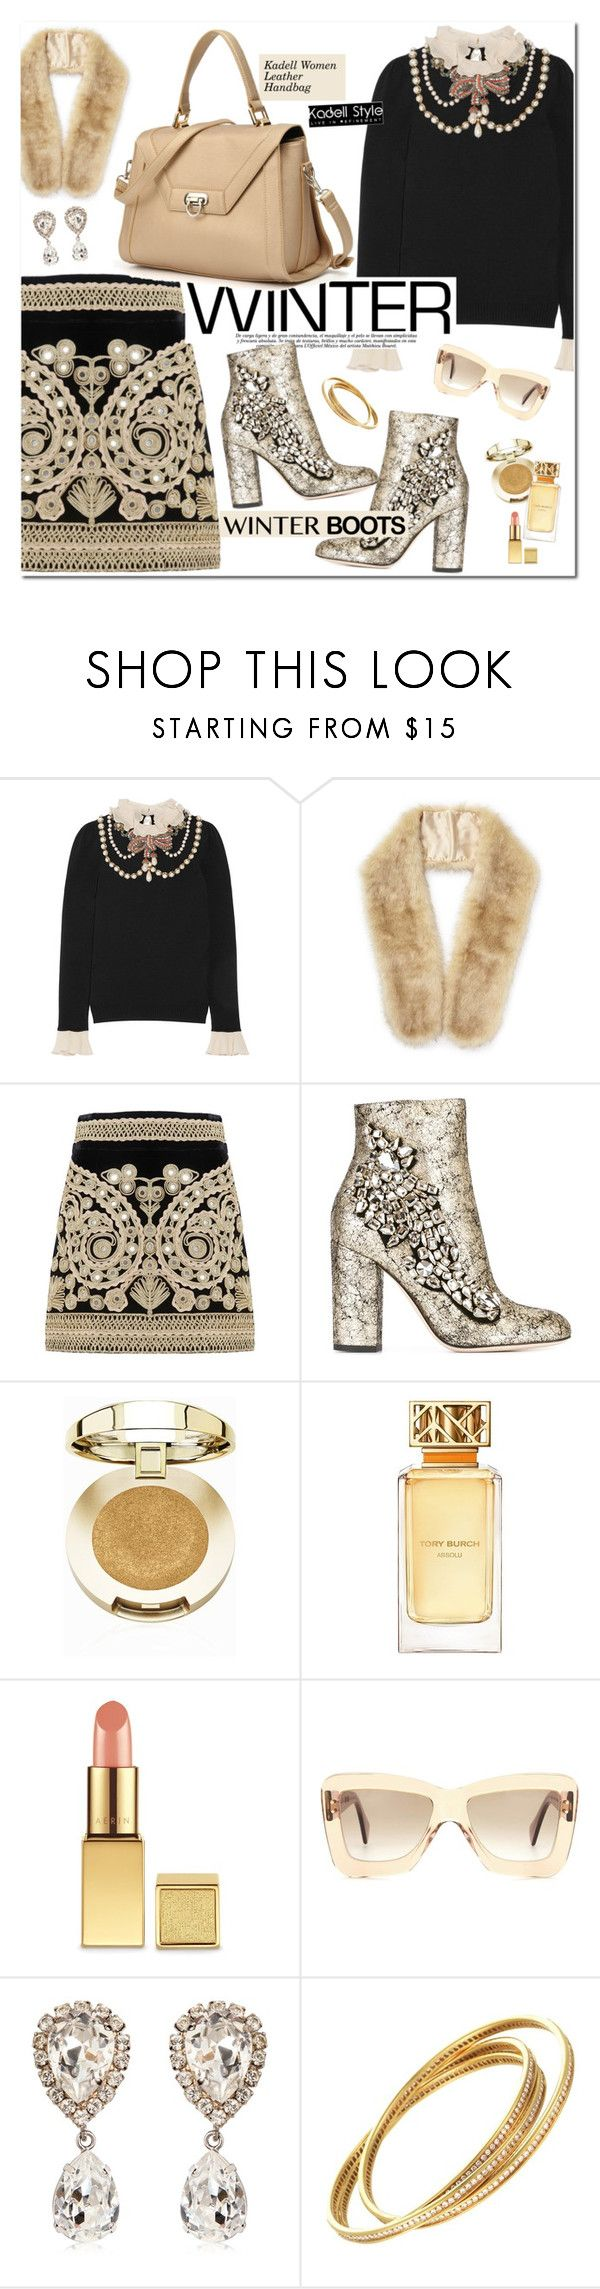 """Kadell Bag"" by oshint ❤ liked on Polyvore featuring Gucci, Miss Selfridge, For Love & Lemons, GEDEBE, Milani, Tory Burch, Roksanda, Dolce&Gabbana and Cartier"